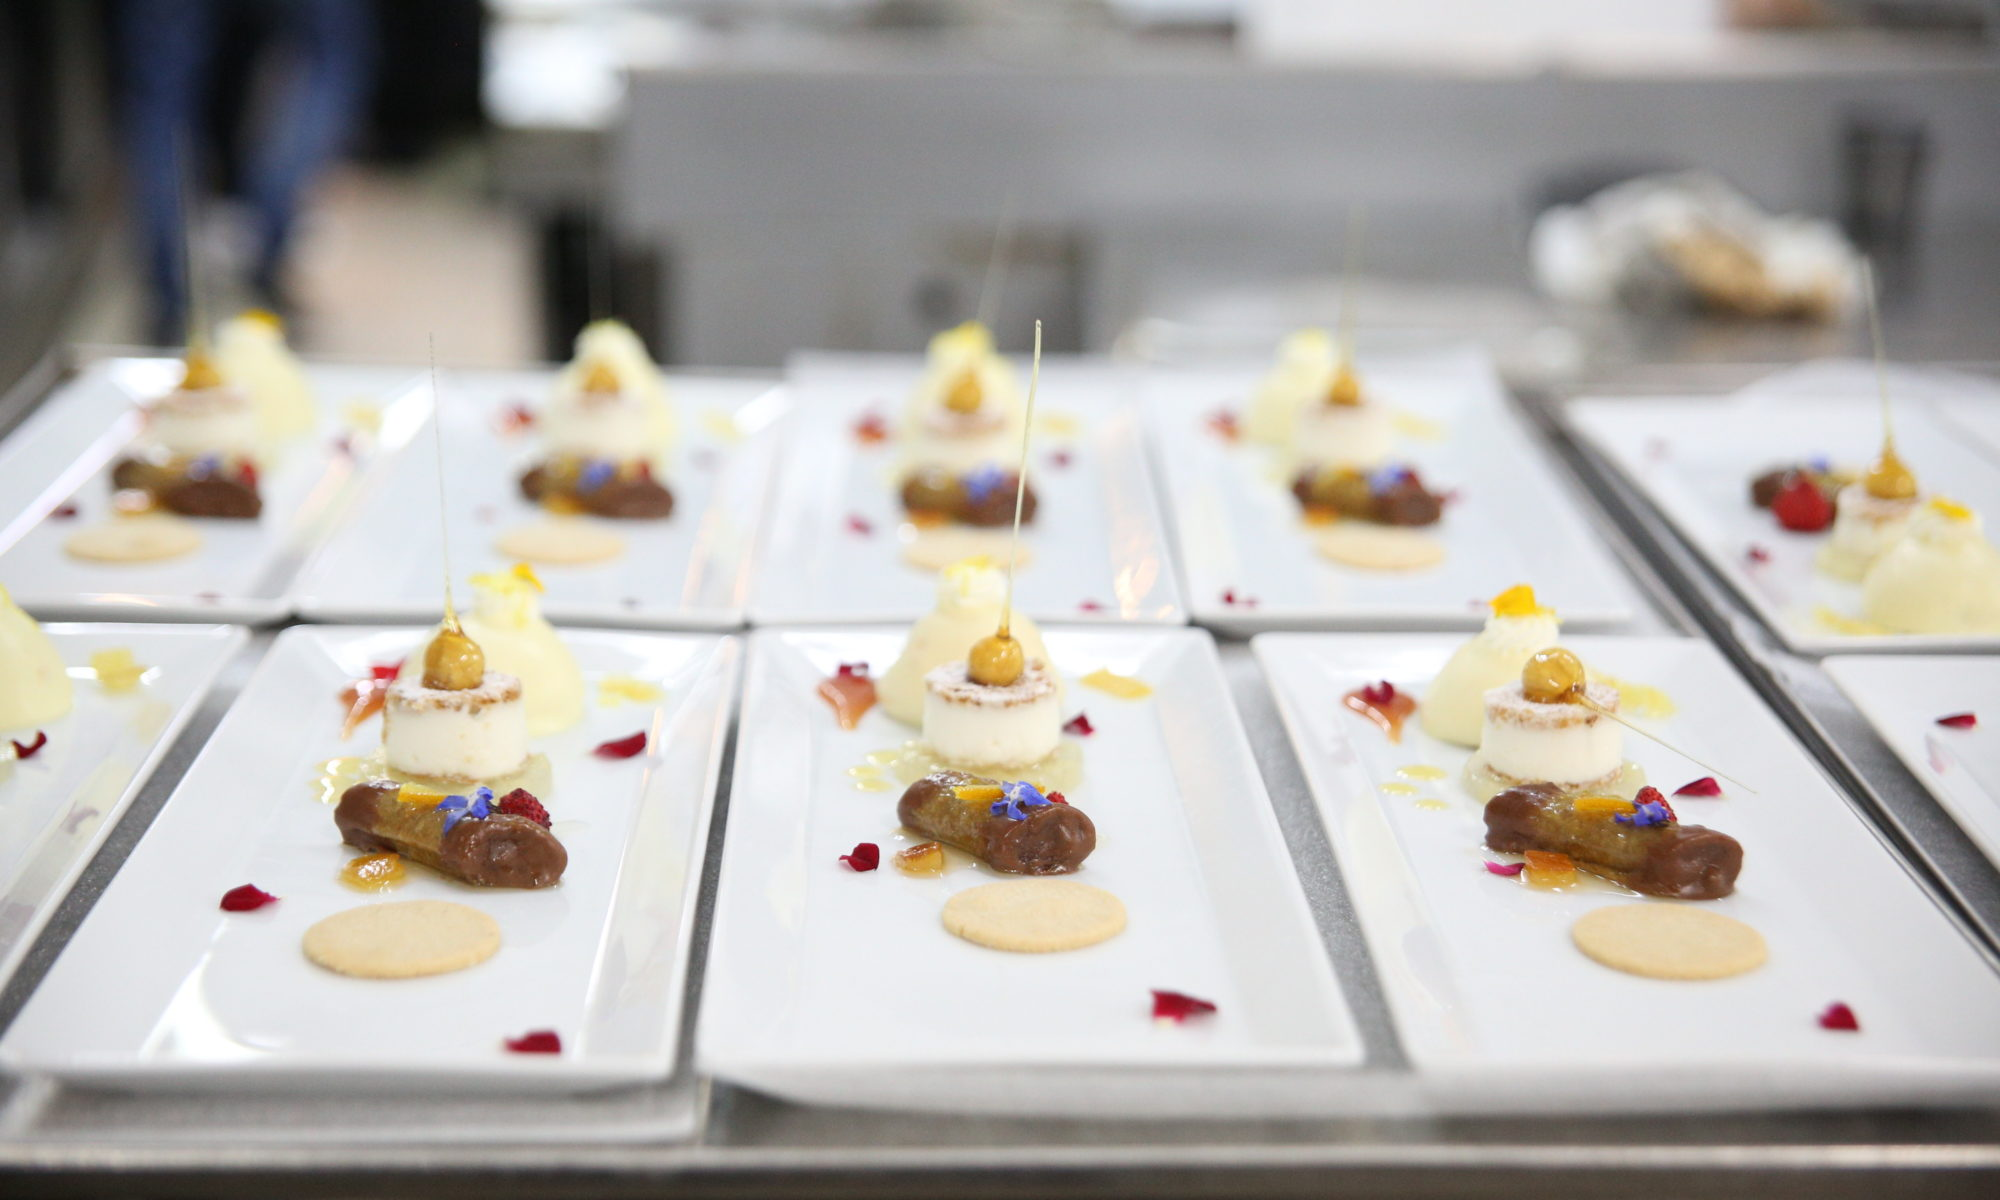 catering e banqueting salerno - photo#9